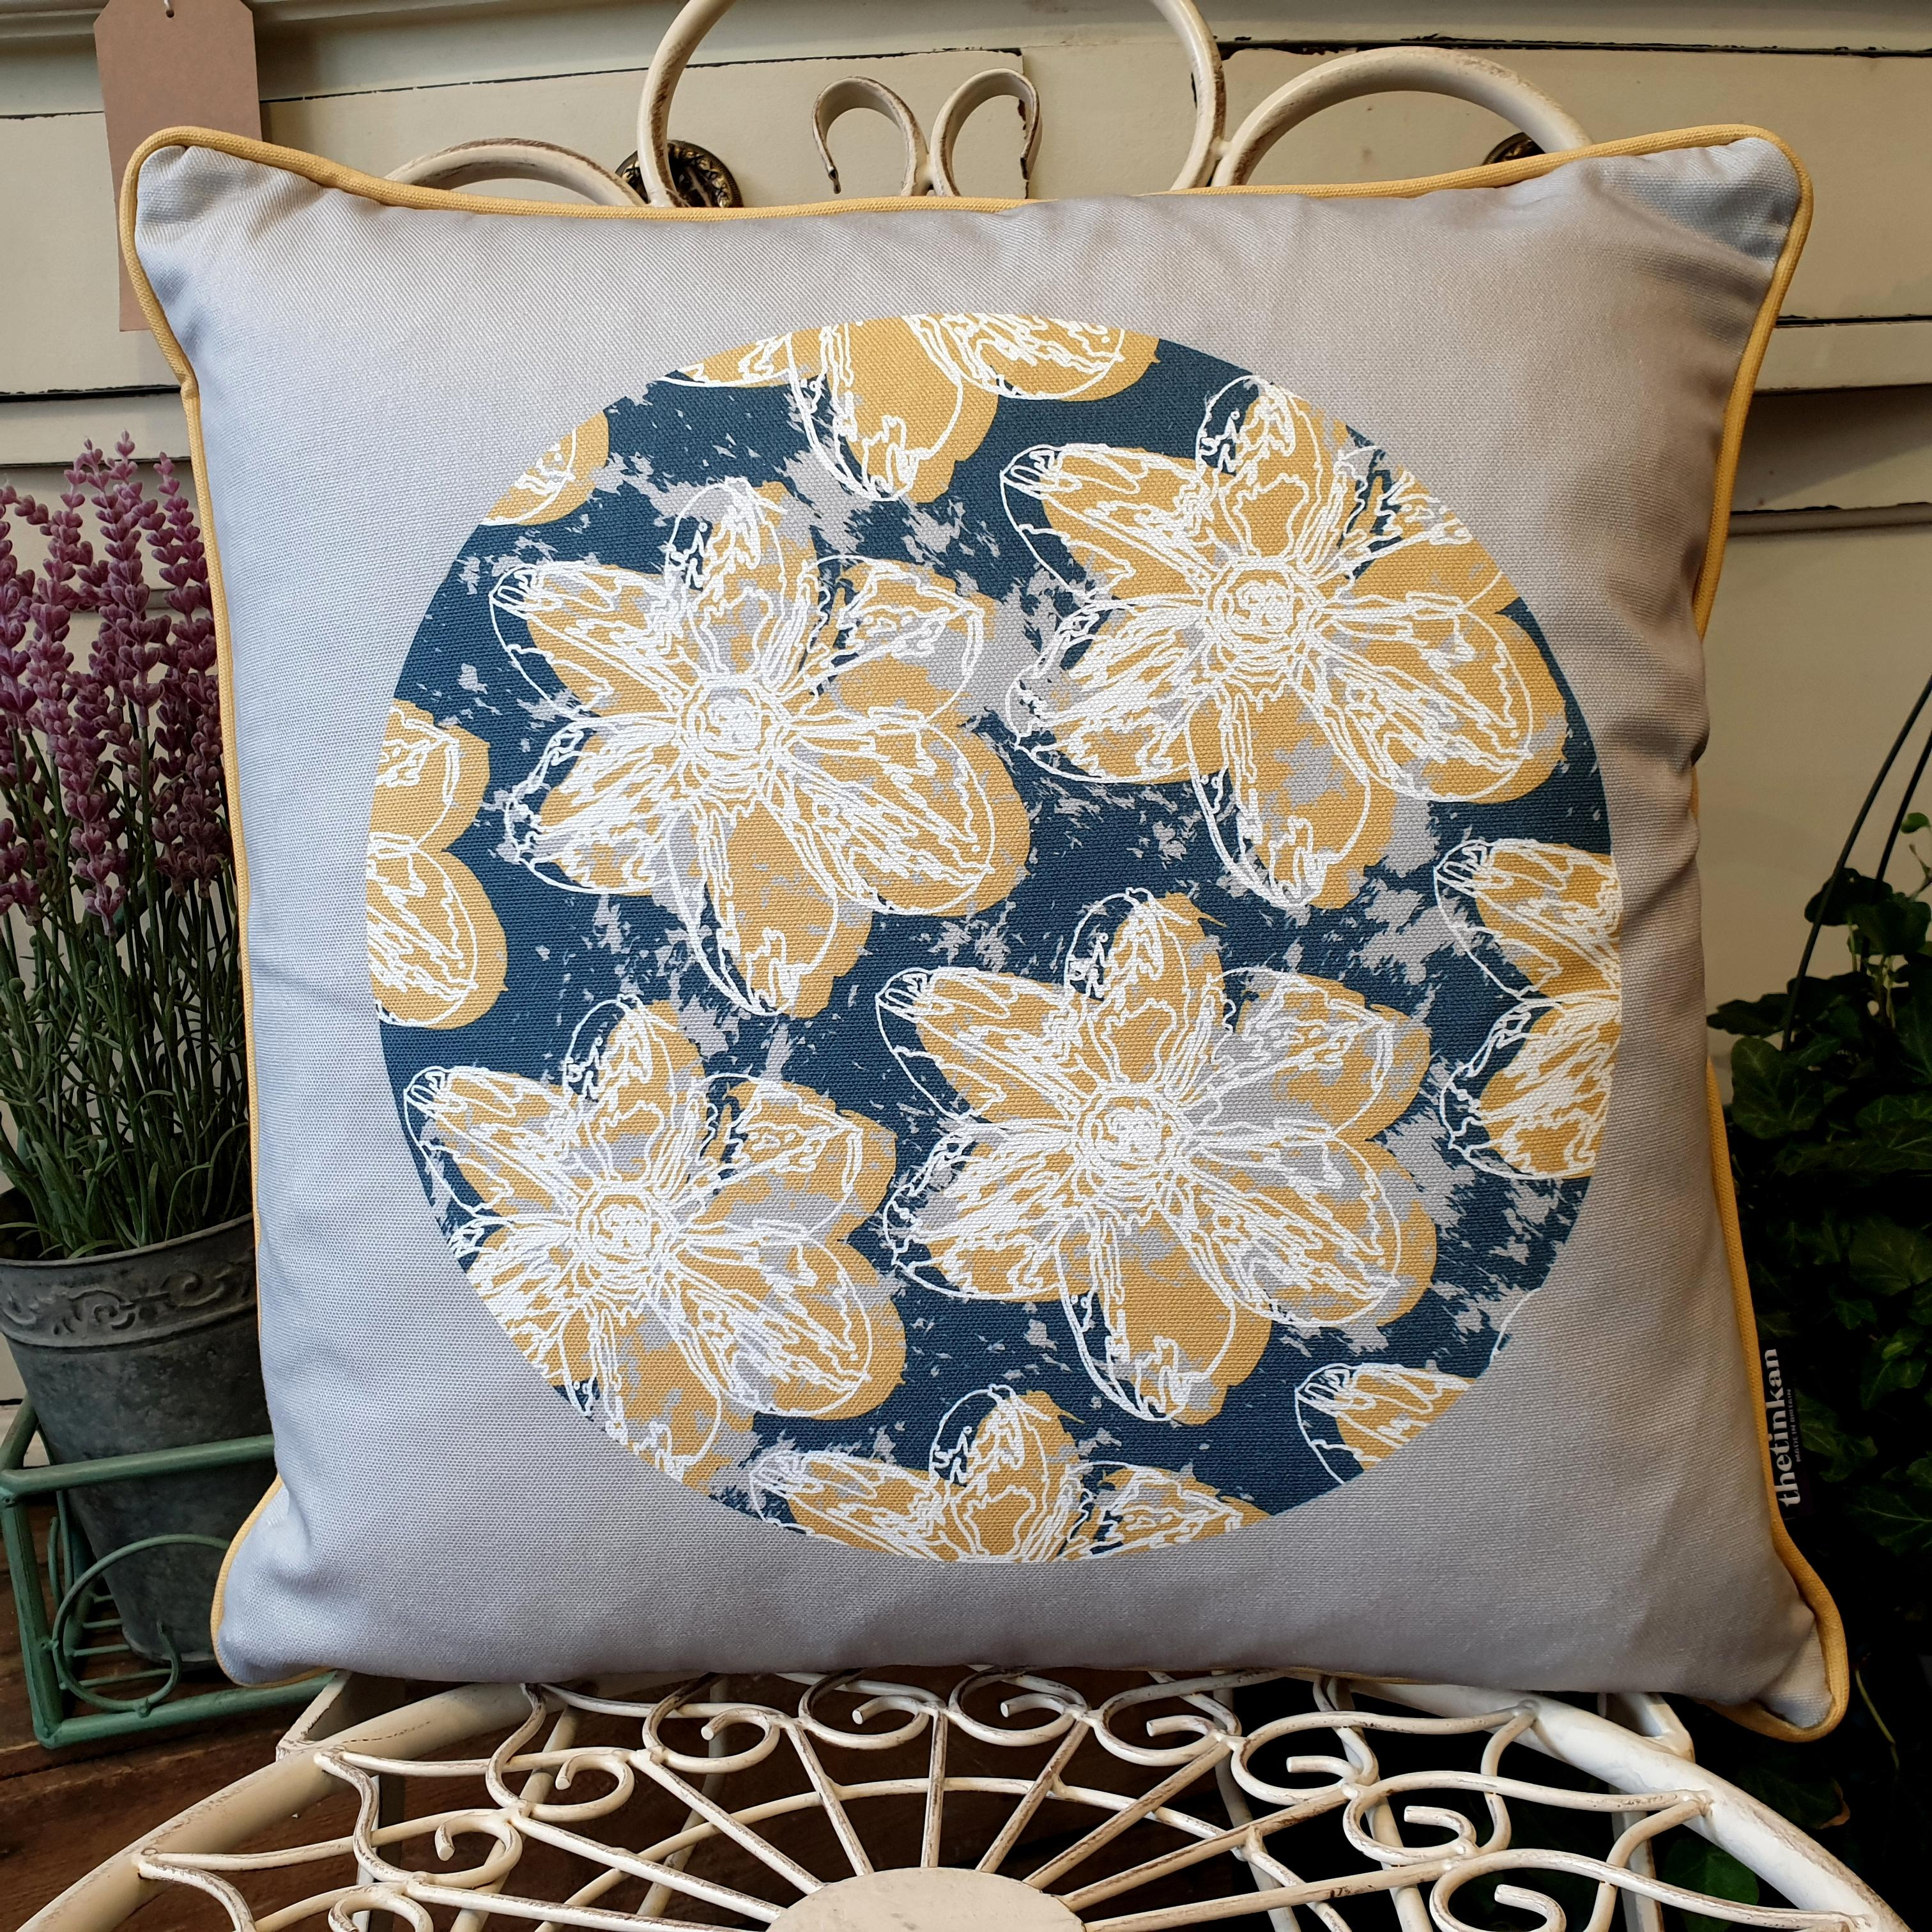 Double-sided 45cm square Flower Splash cushion designed by thetinkan. Mustard yellow narcissus flower with white traced outline and mustard yellow piping set in an oxford blue coloured circle with pale grey paint splashes and pale grey surround. Available with an optional luxury cushion inner pad. VIEW PRODUCT >>